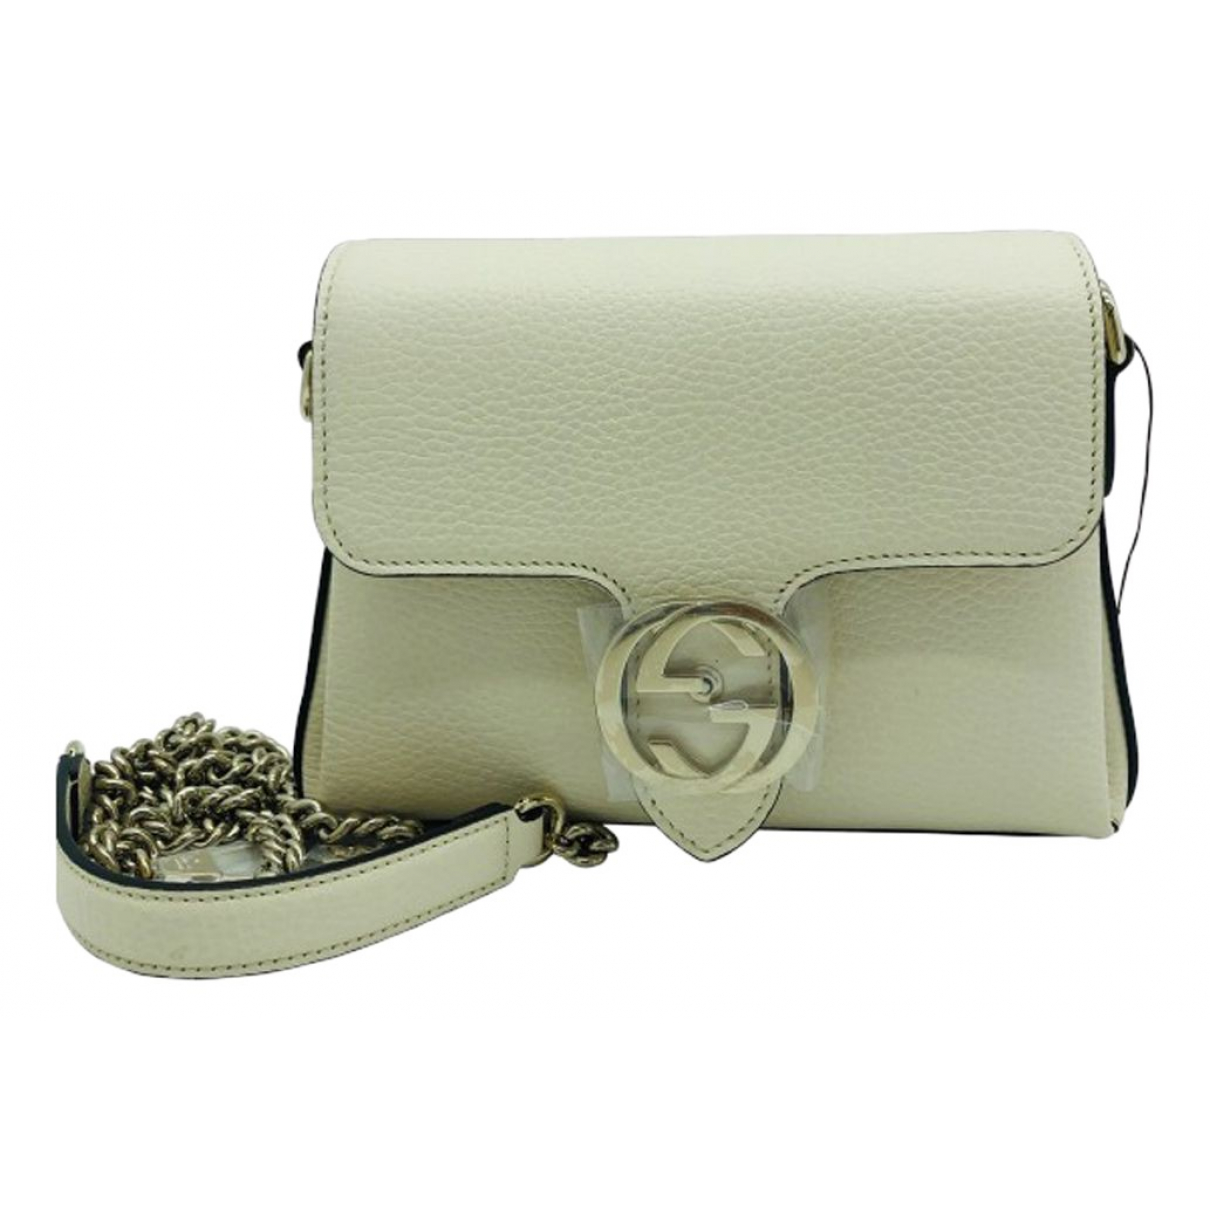 Gucci Interlocking Beige Leather handbag for Women \N